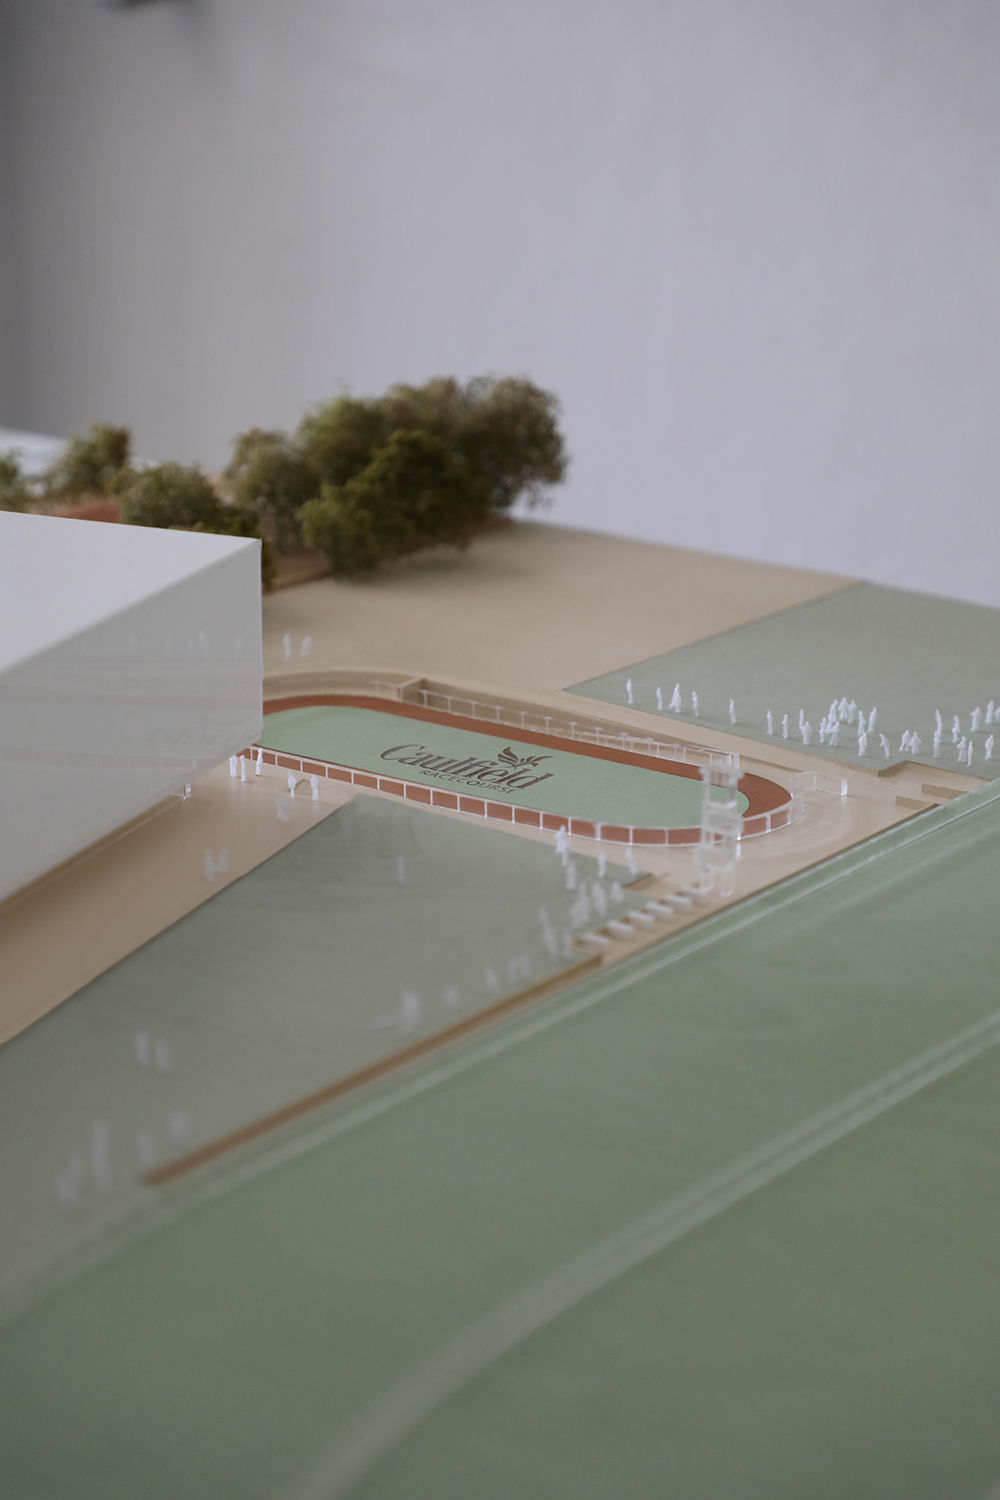 Timber Presentation Model for Hassel at 1:200.